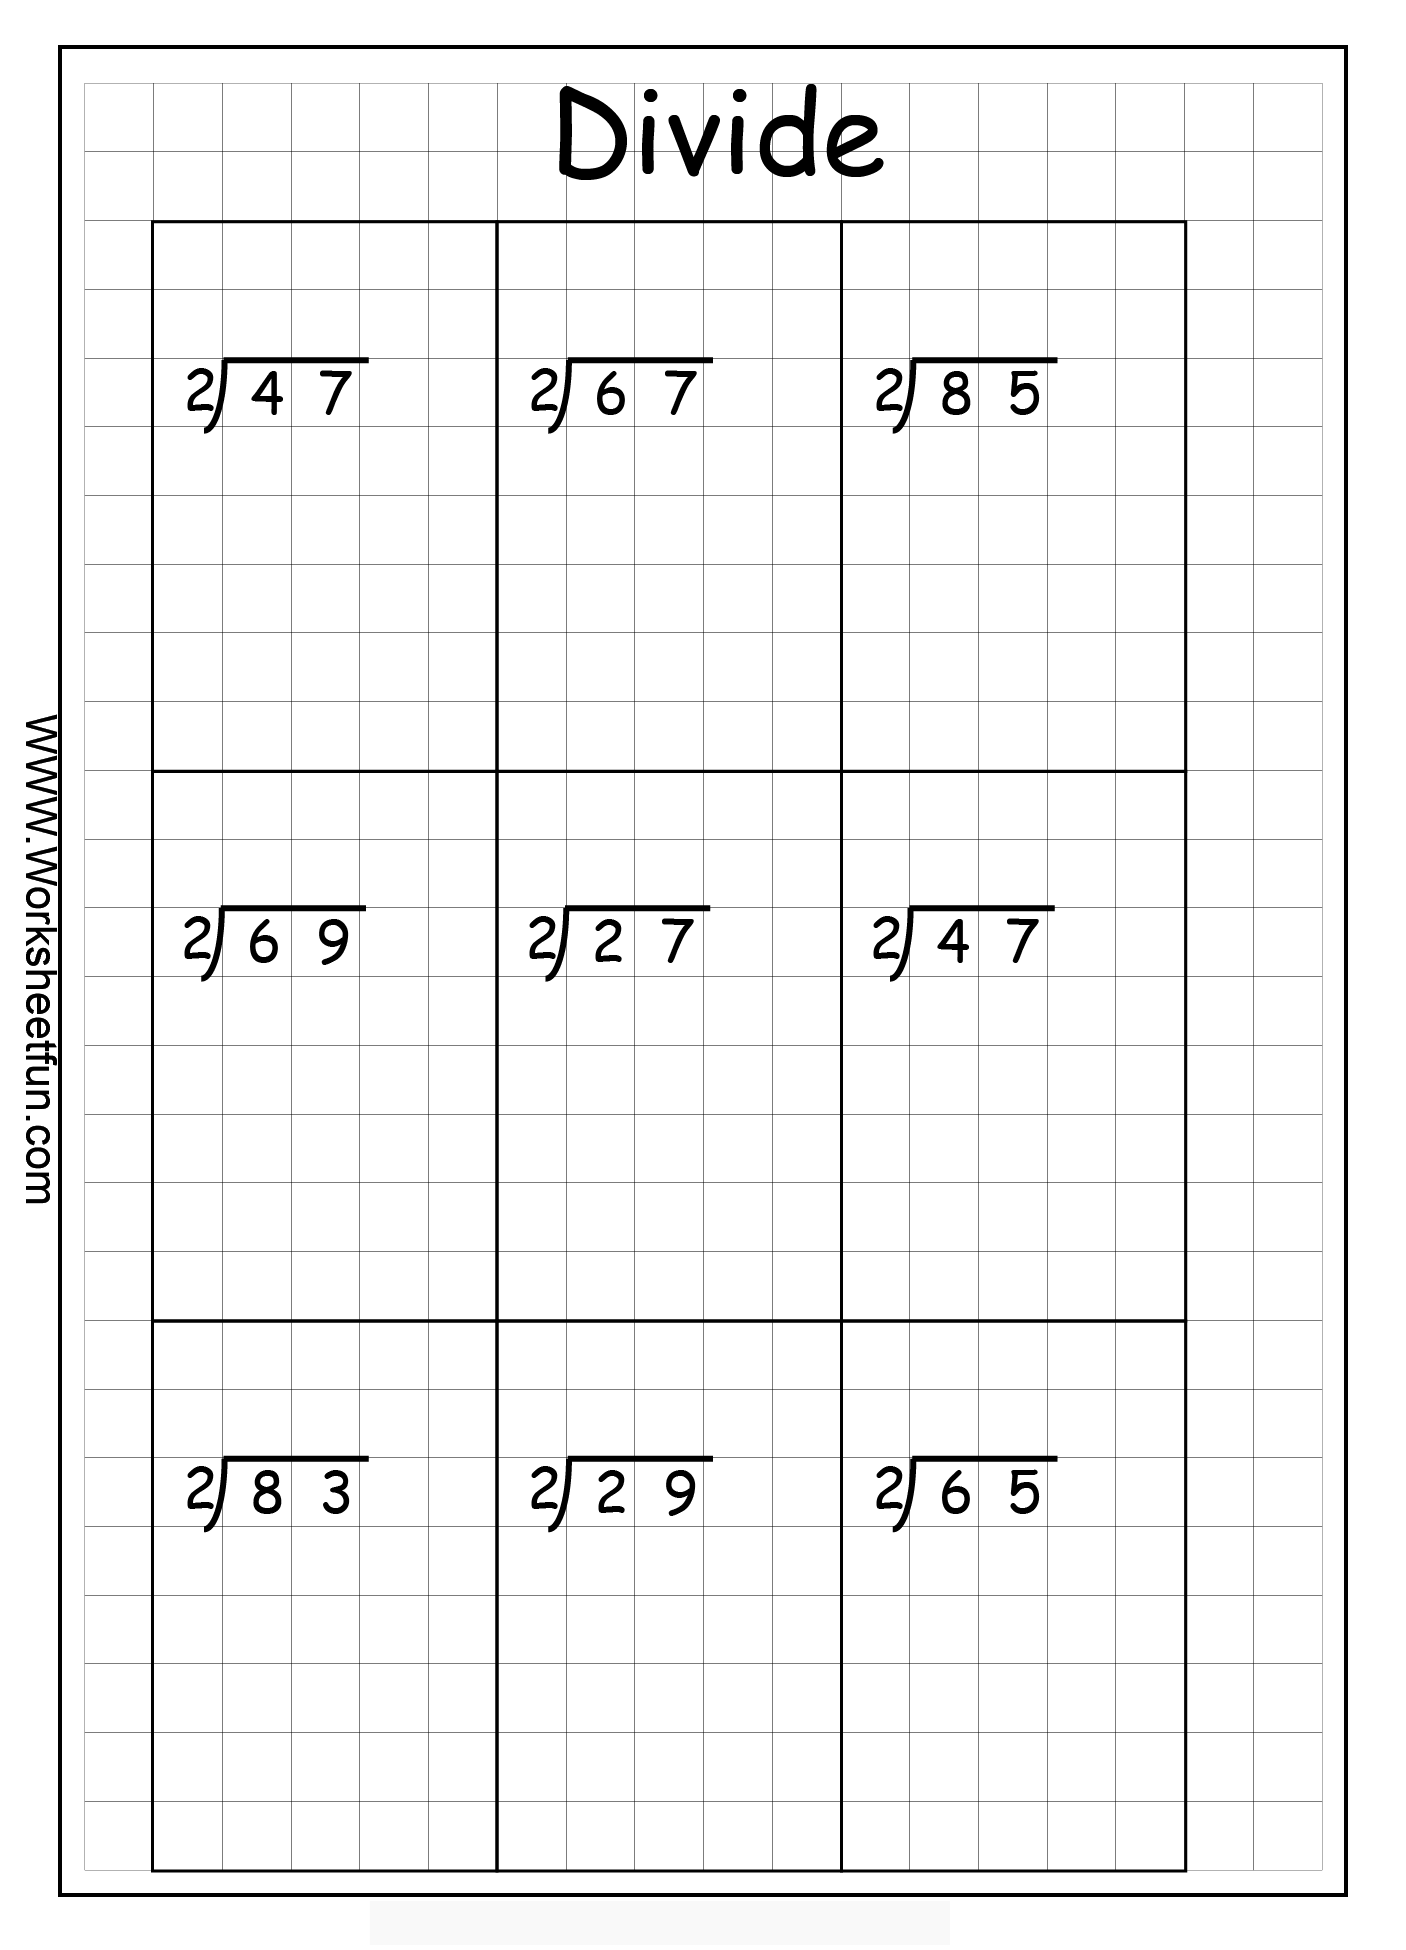 Long Division 2 Digits By 1 Digit With Remainder 8